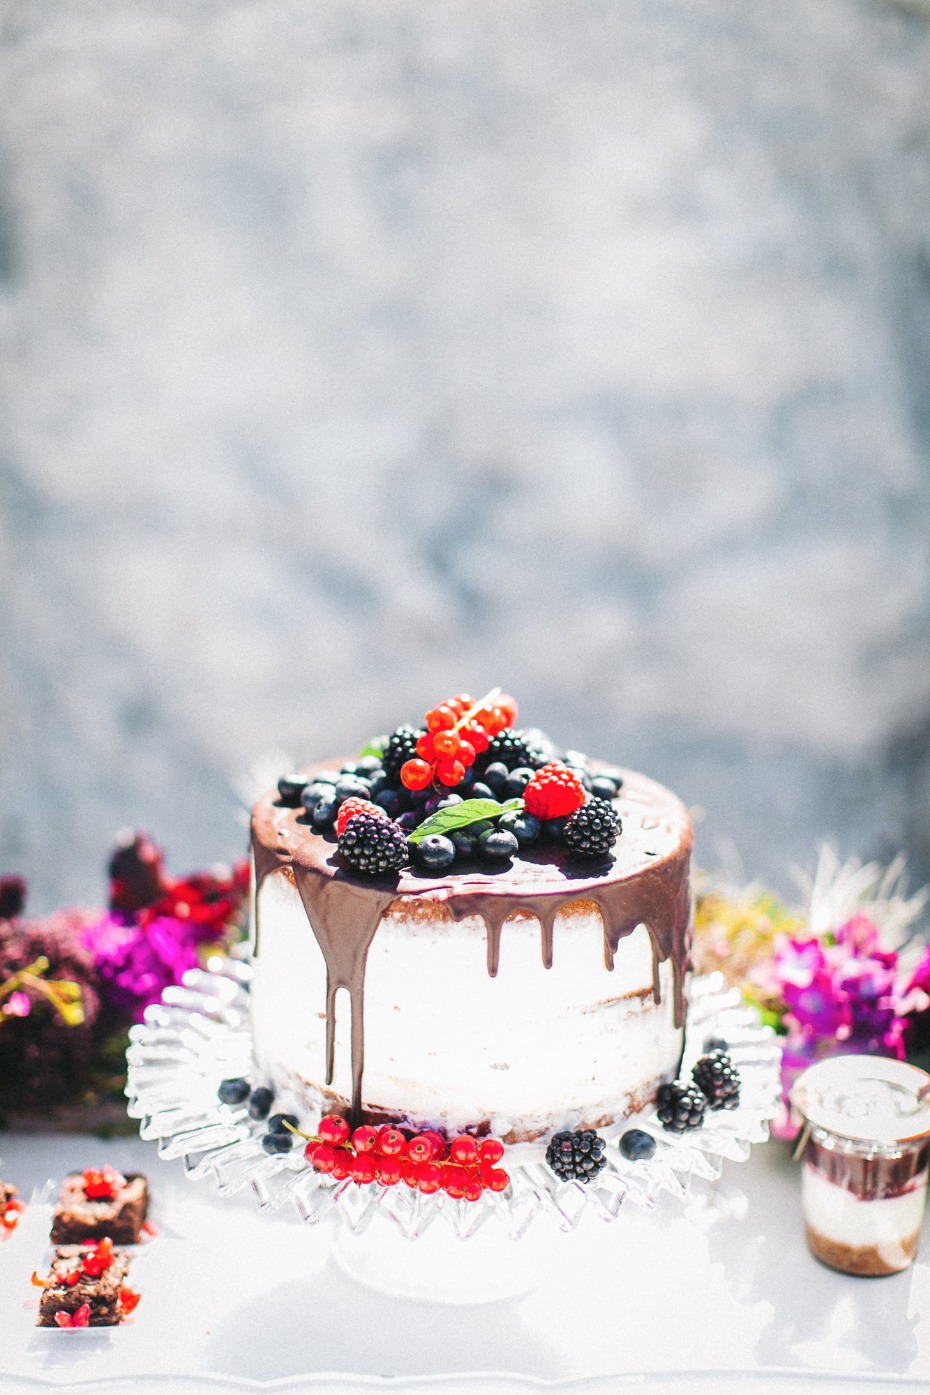 Berry chocolate drop naked cake